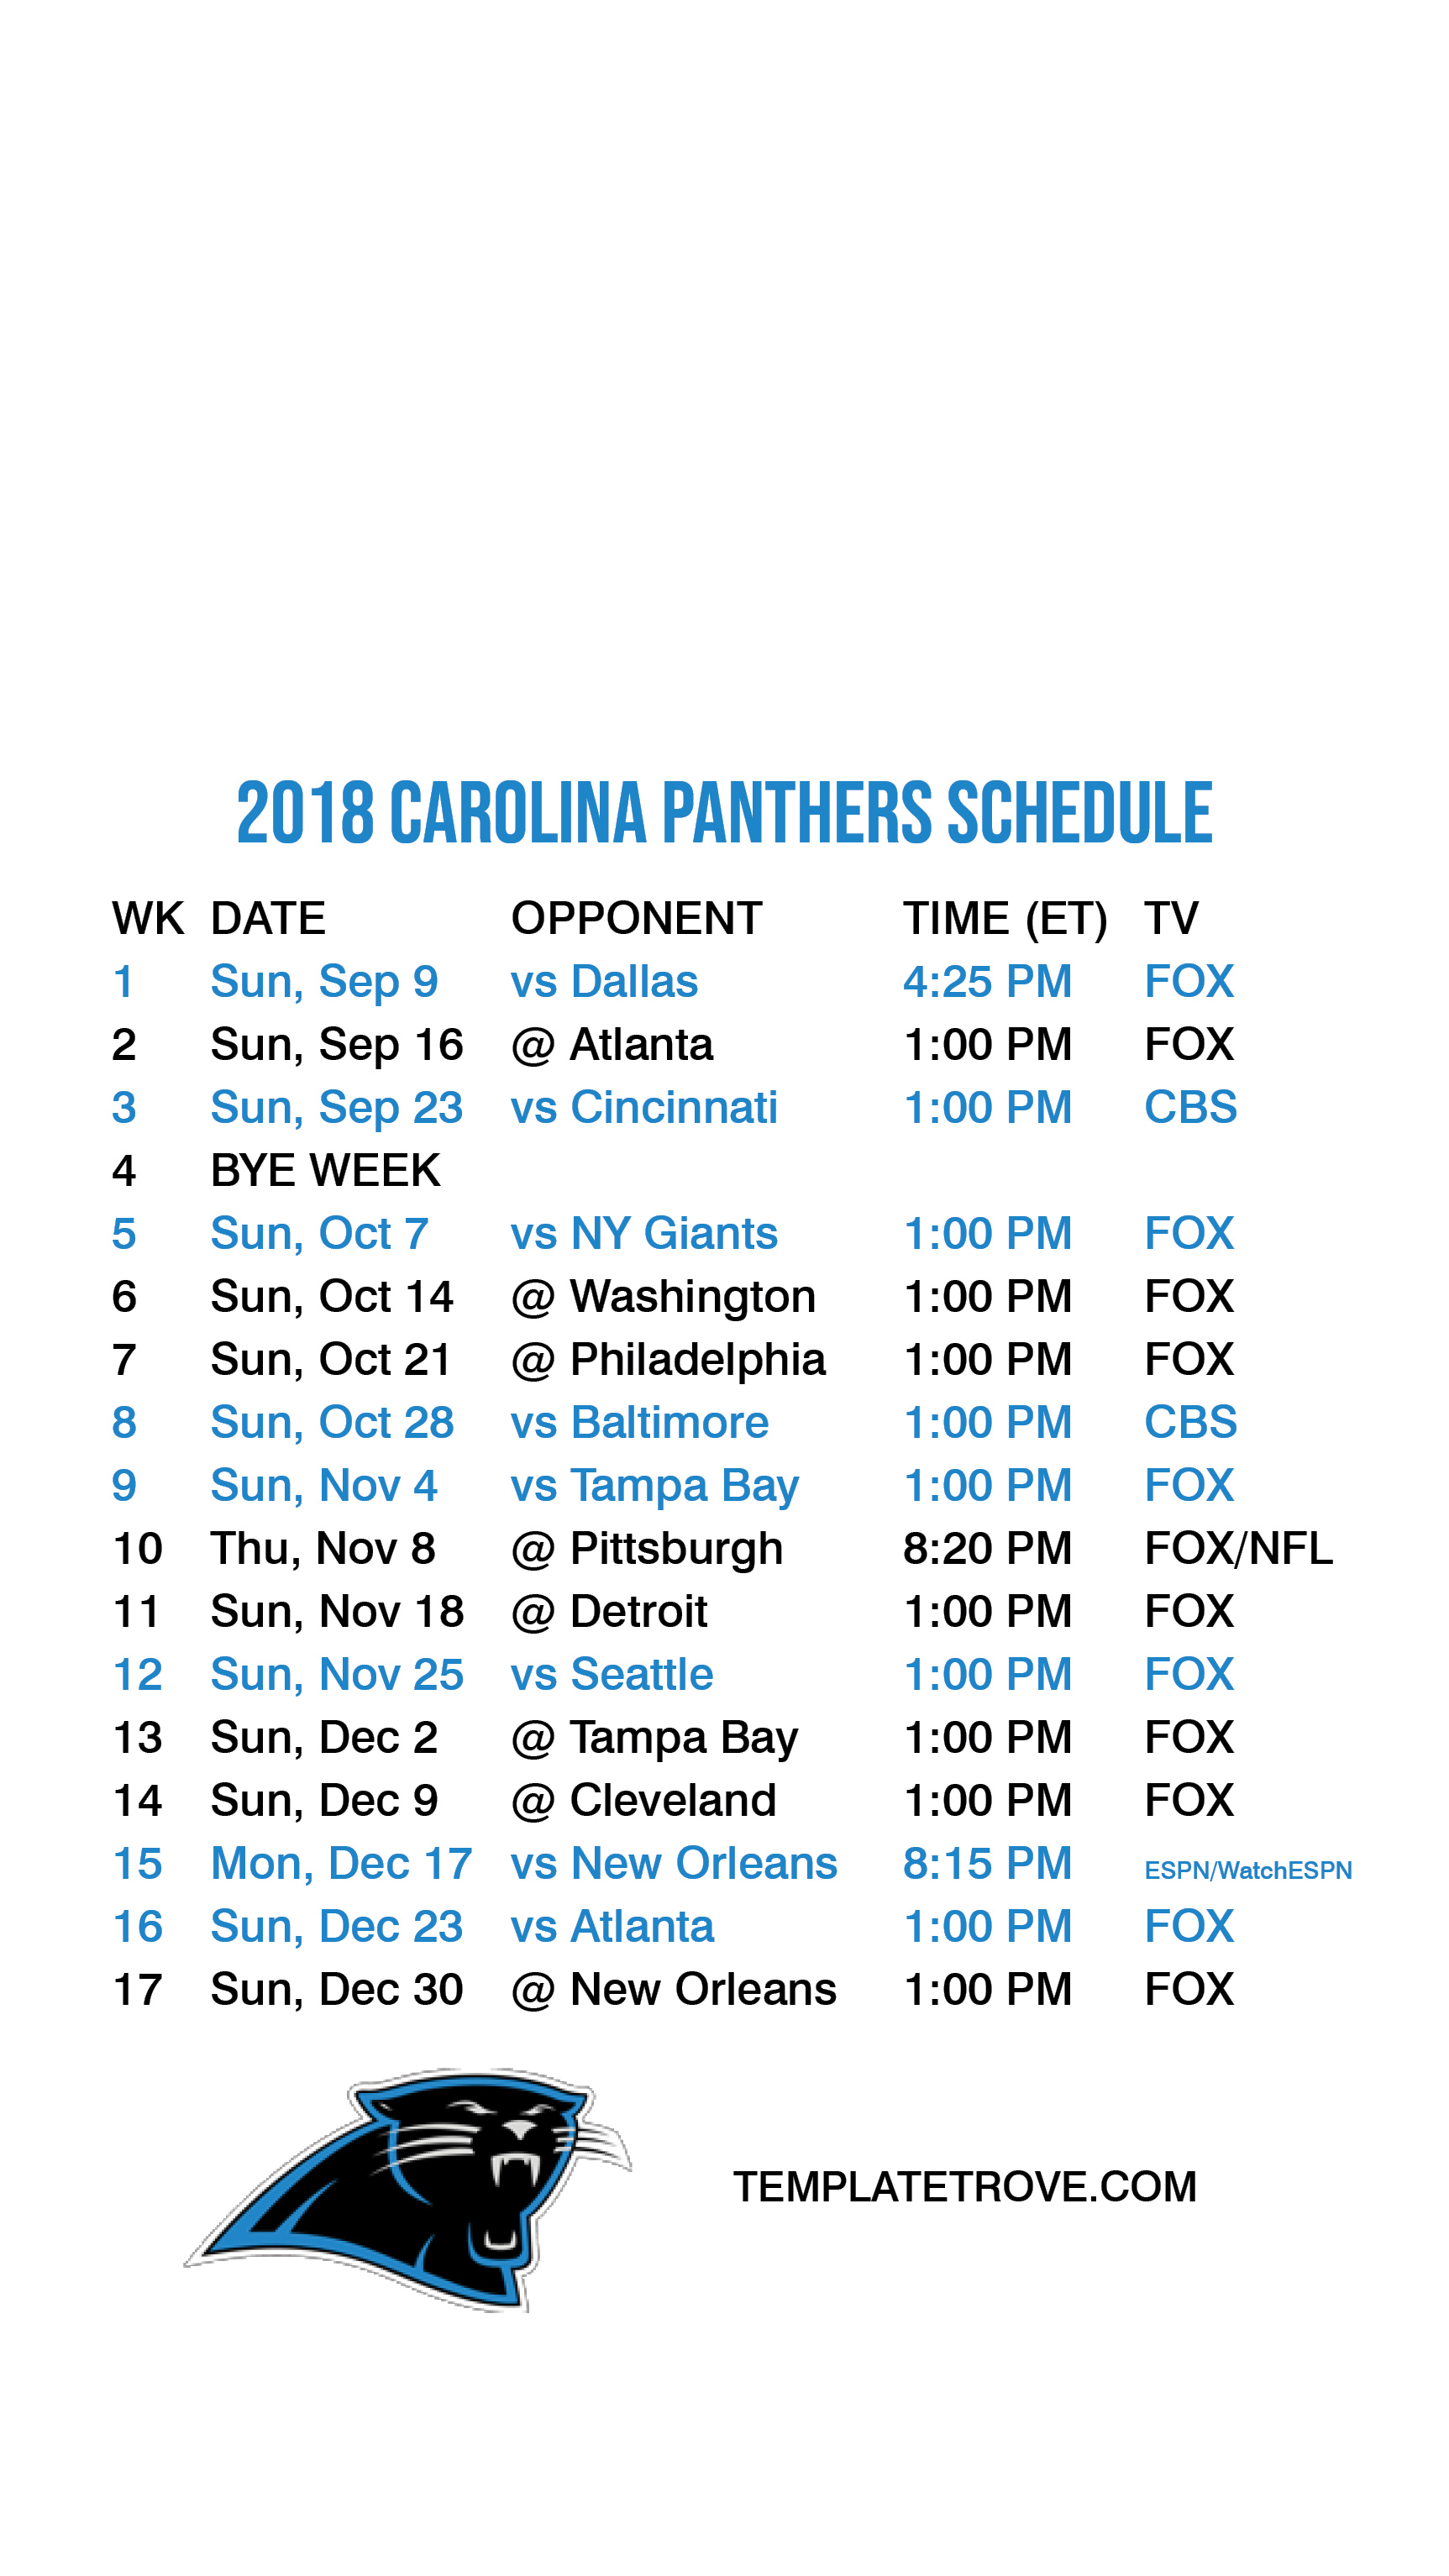 2018 2019 Carolina Panthers Lock Screen Schedule for iPhone 6 7 8 Plus 1725x3067